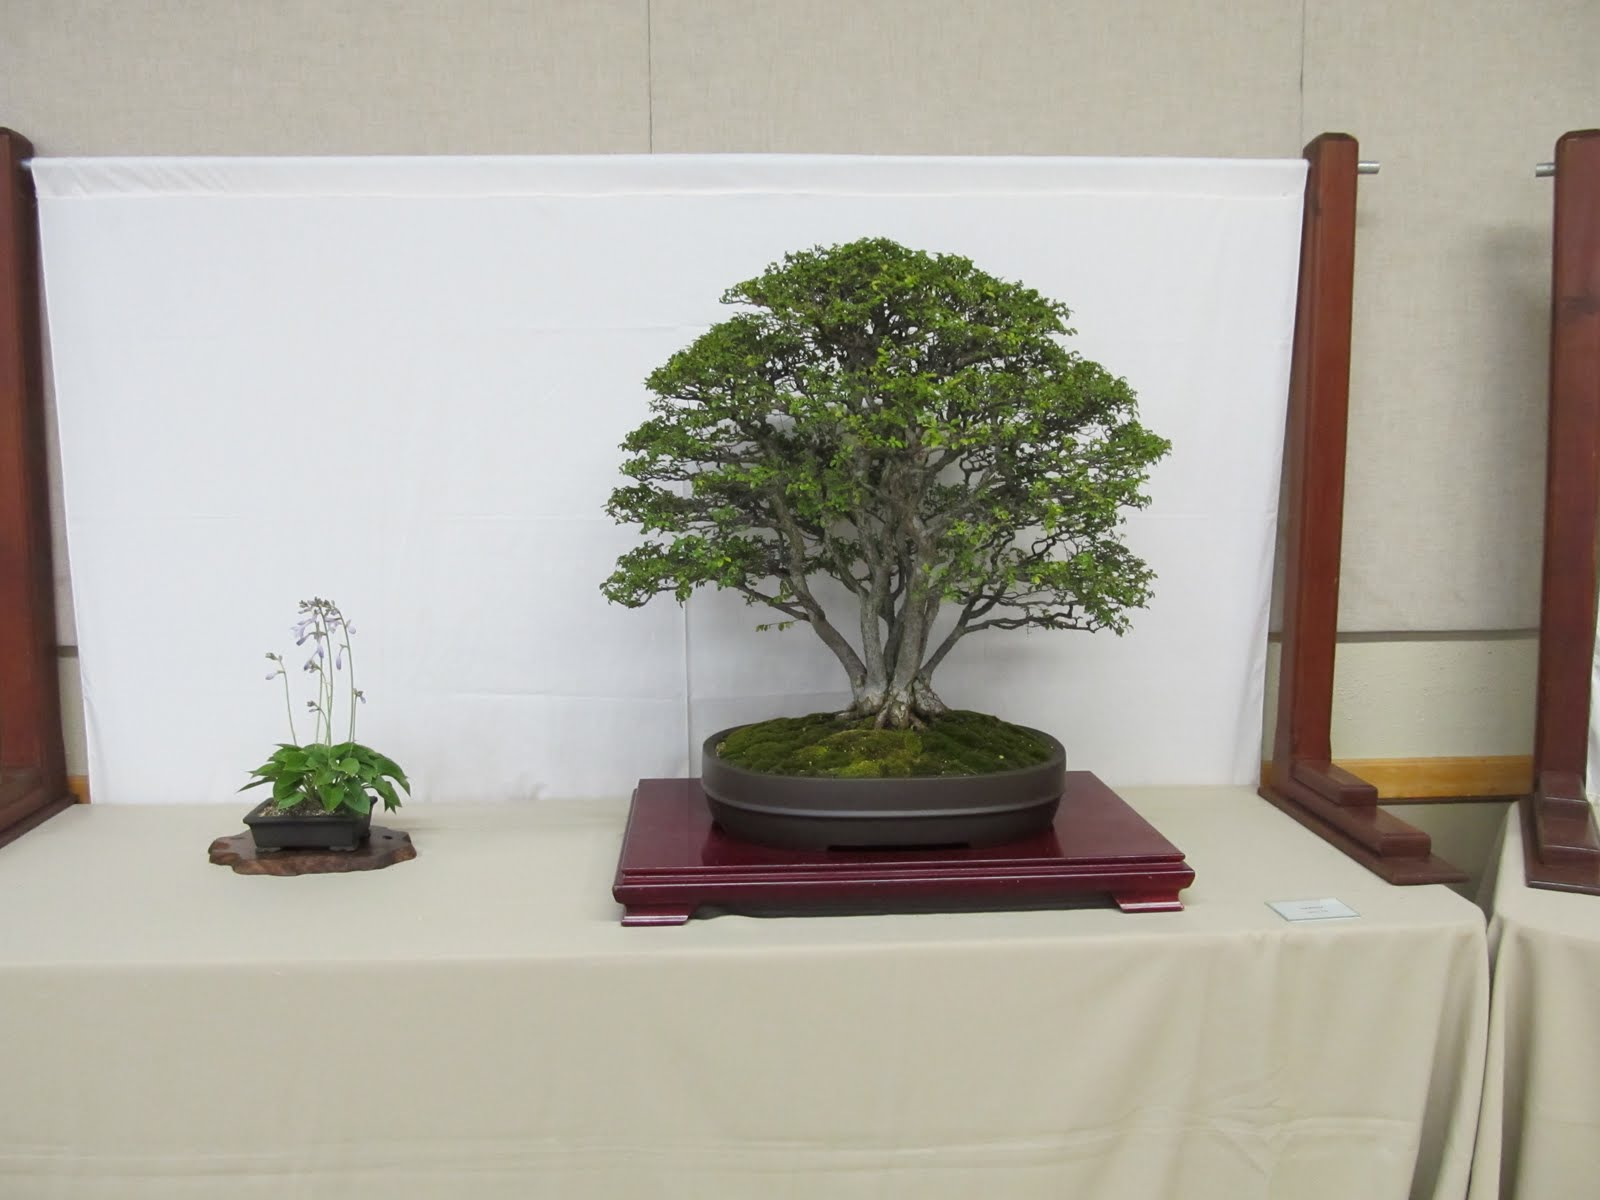 Bonsaibp39s Bonsai Blog 06 01 2011 07 01 2011